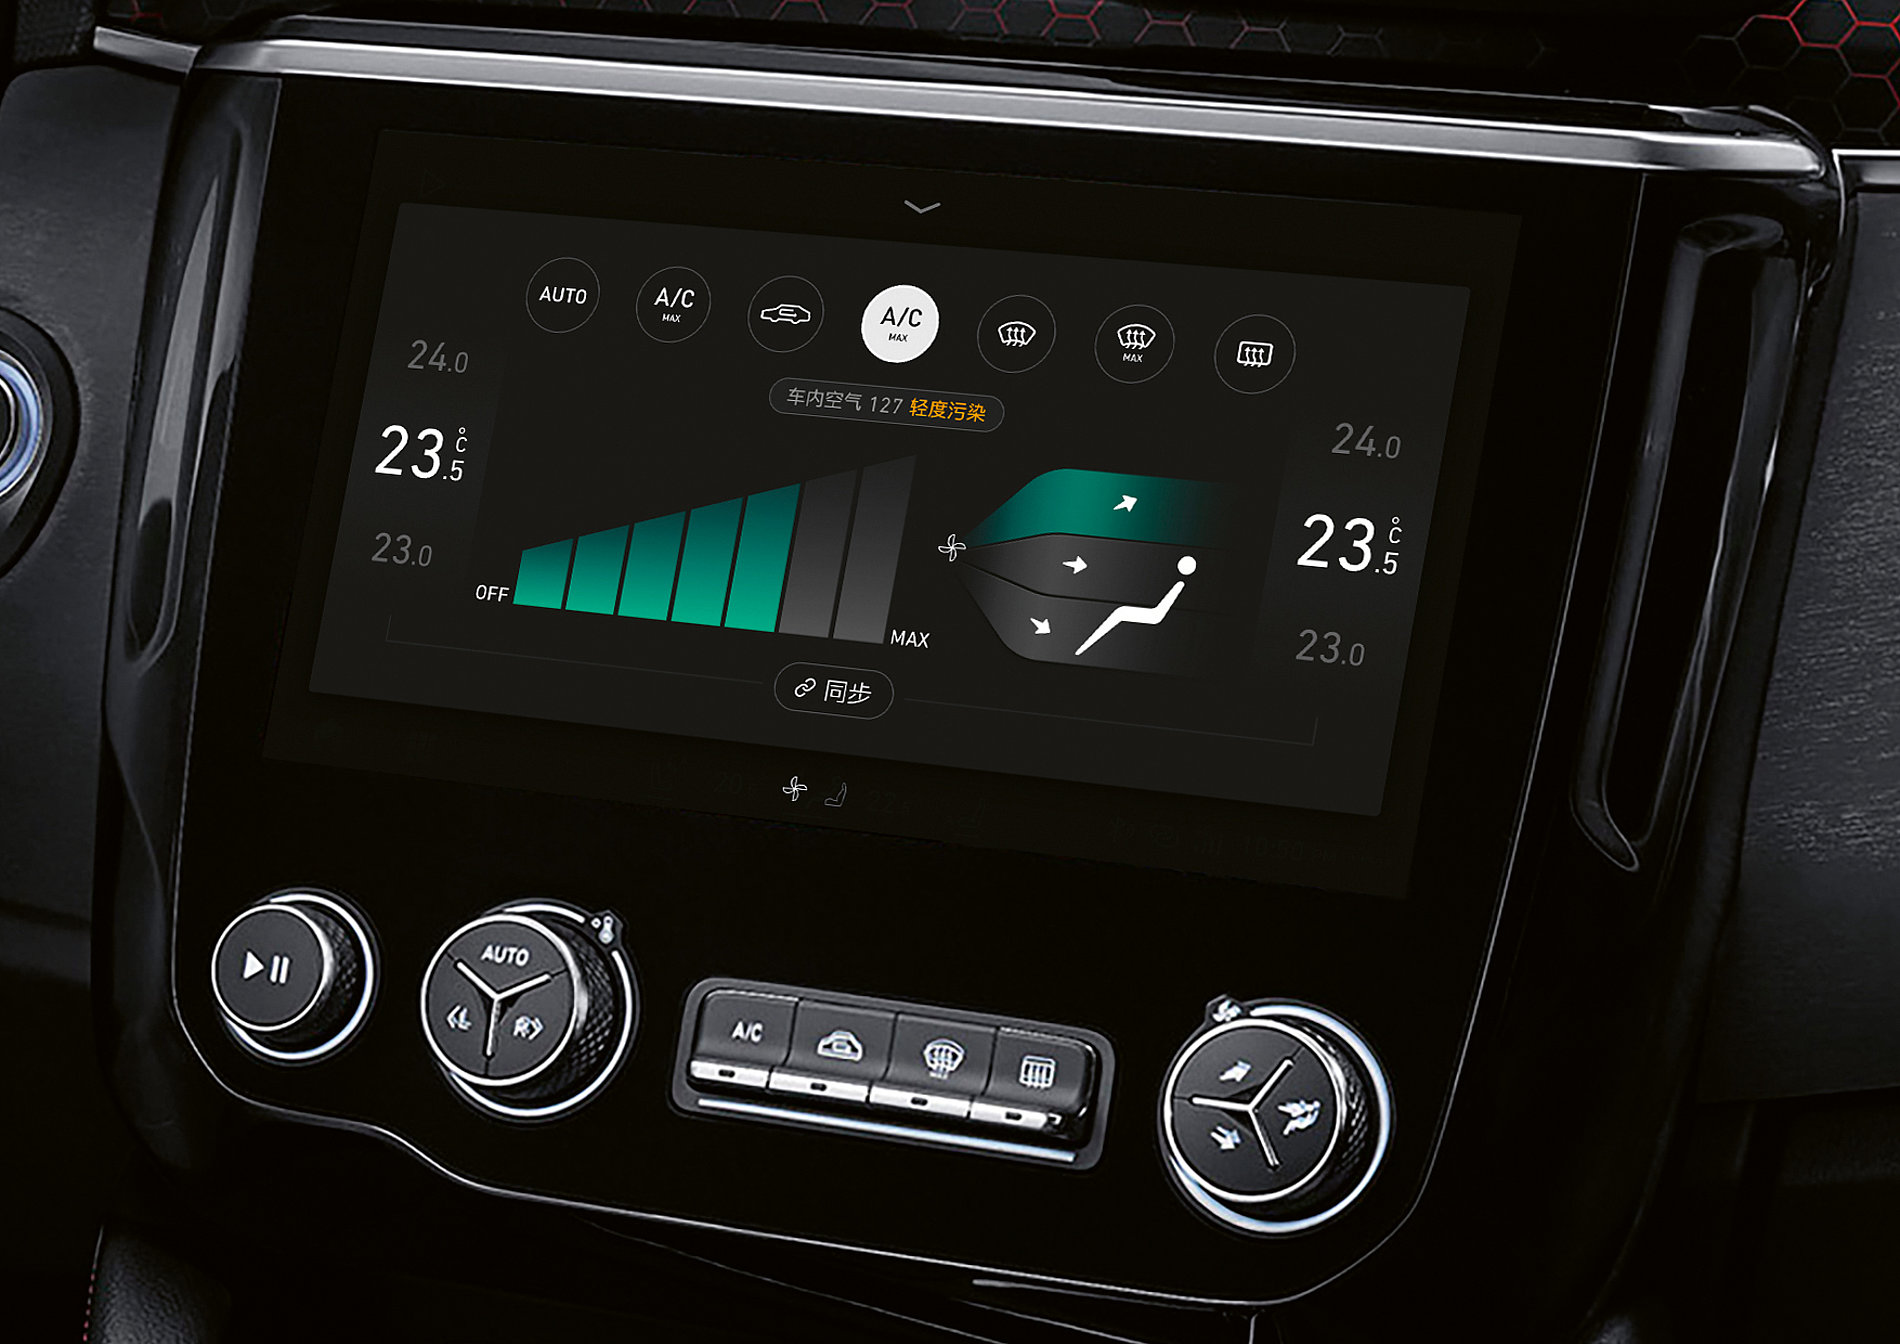 Infotainment System for Lynk & Co 02 | Red Dot Design Award